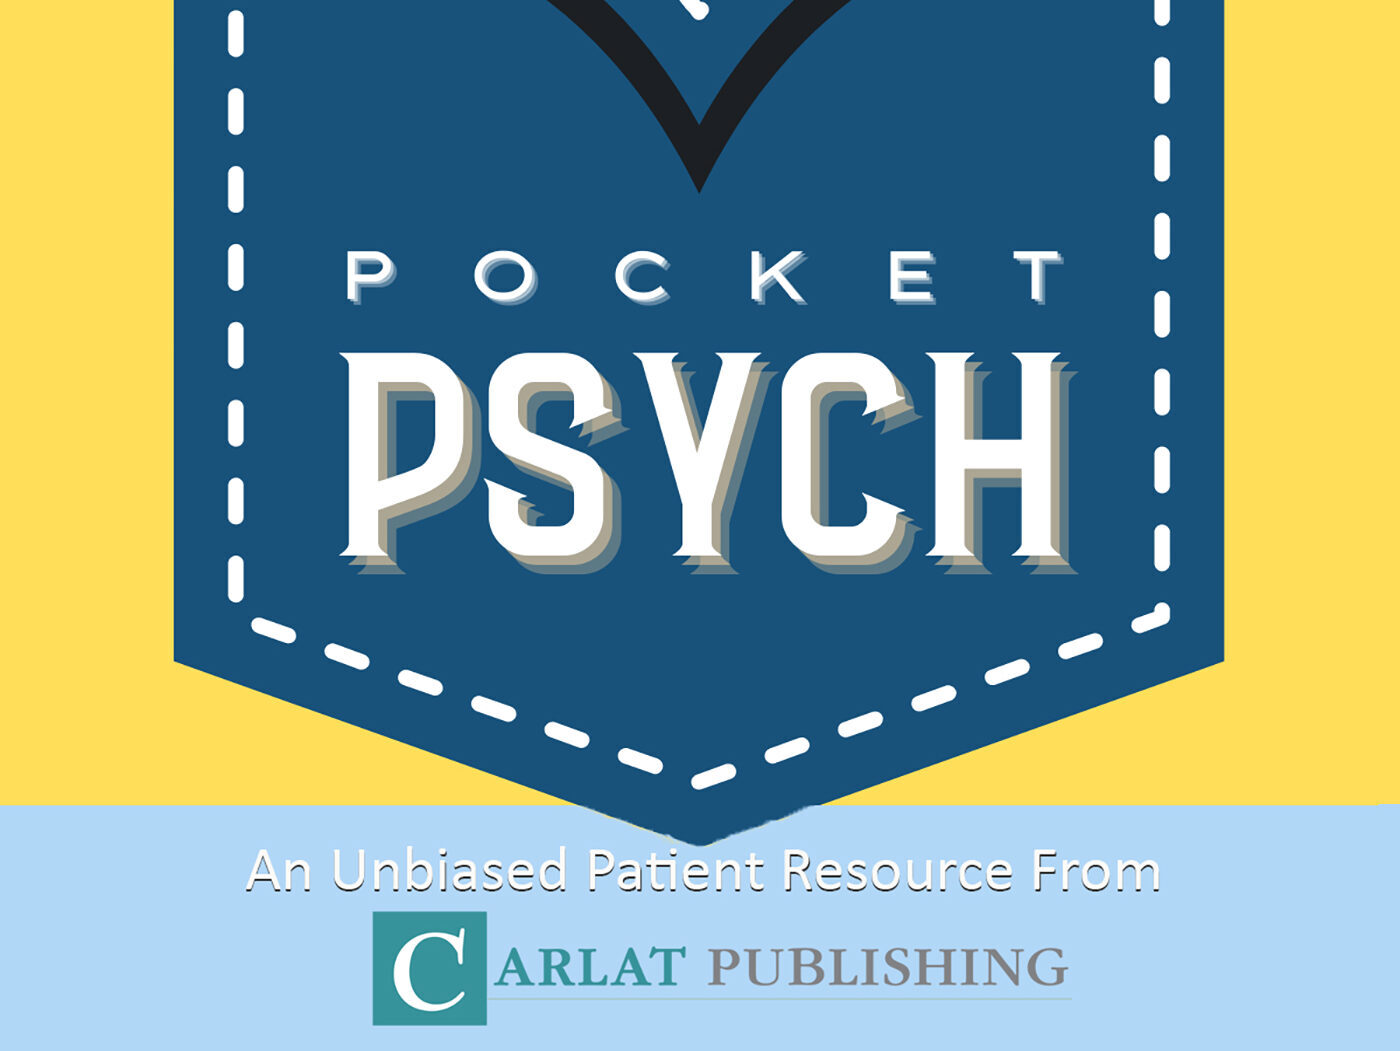 The Pocket Psychiatrist: A Carlat Podcast